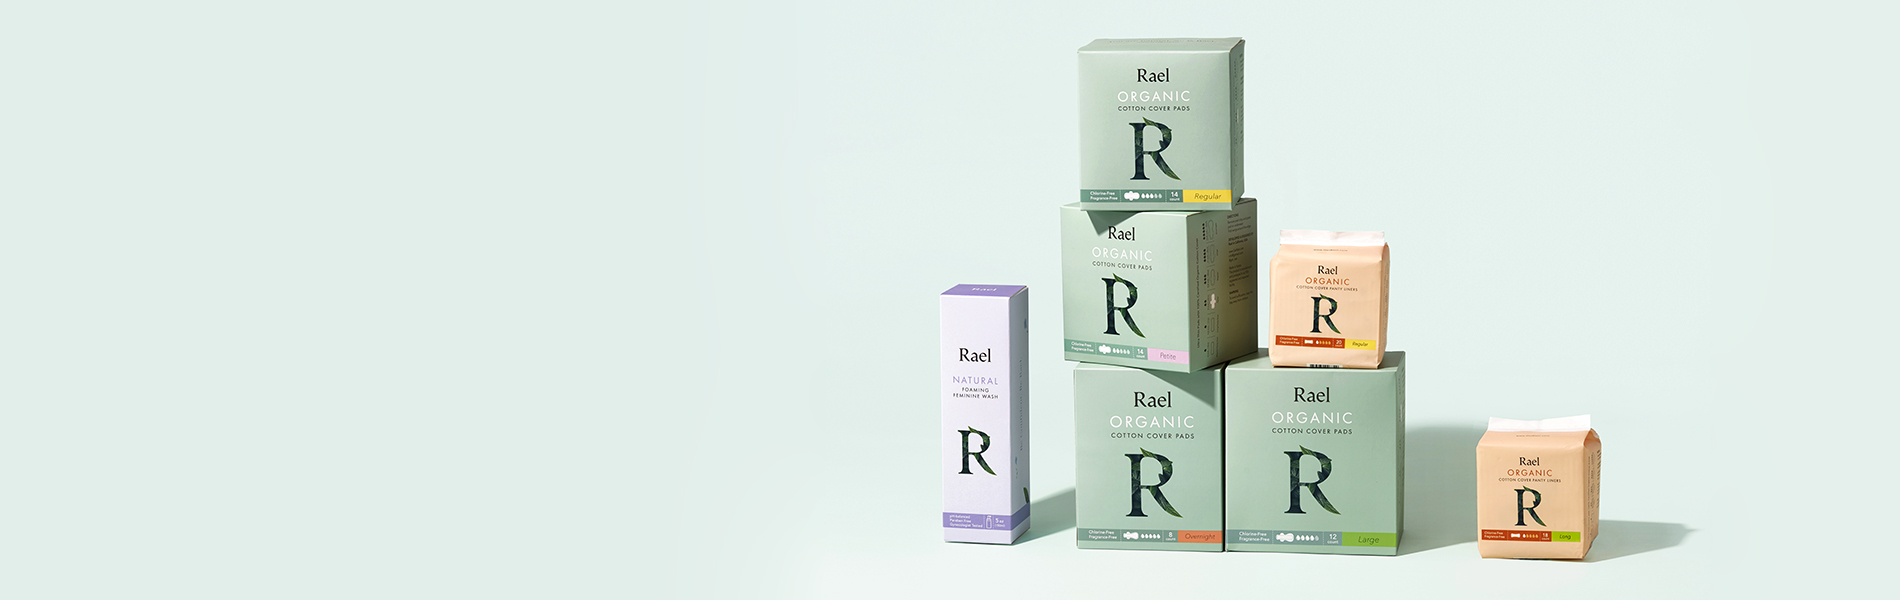 Natural Feminine Care Brand Rael Hits Shelves At Target